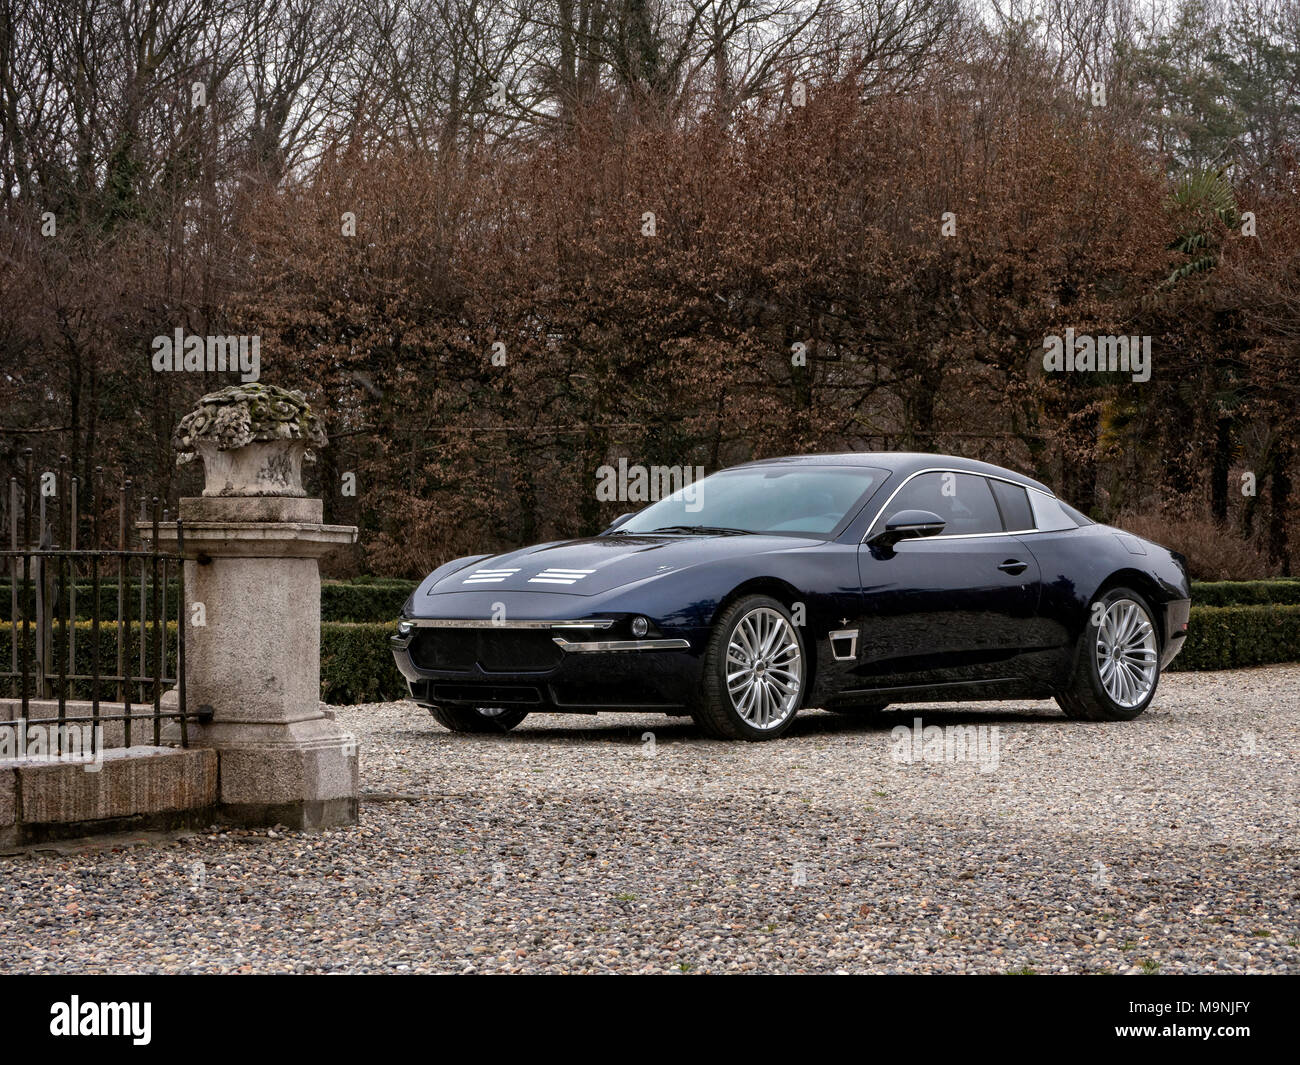 Touring Maserati Sciadipersia 2018. Location Milan Italy - Stock Image